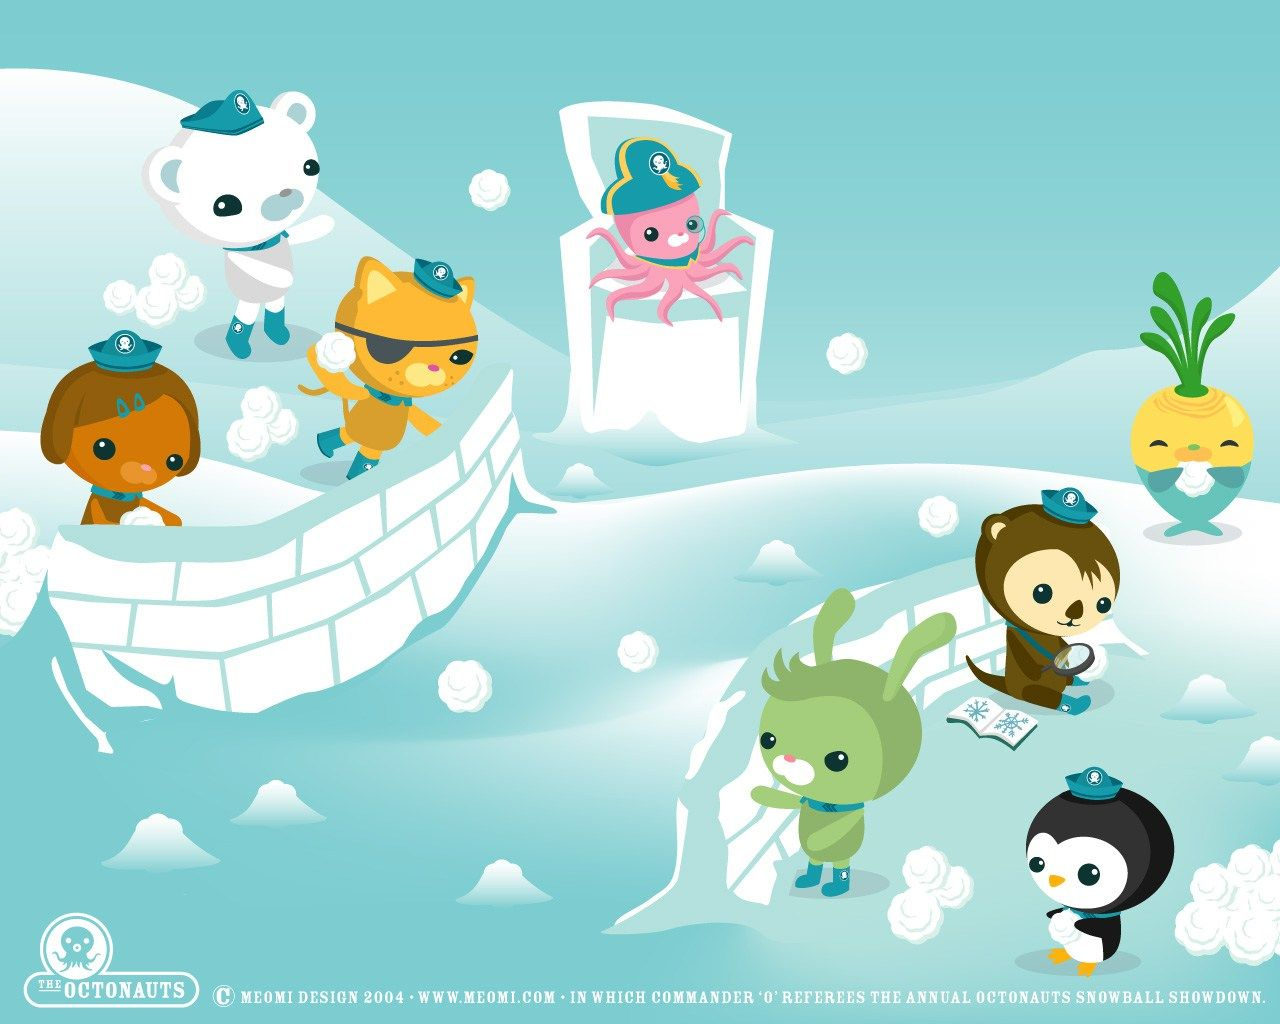 1280x1024 Cute free winter wallpapers | modeS Blog